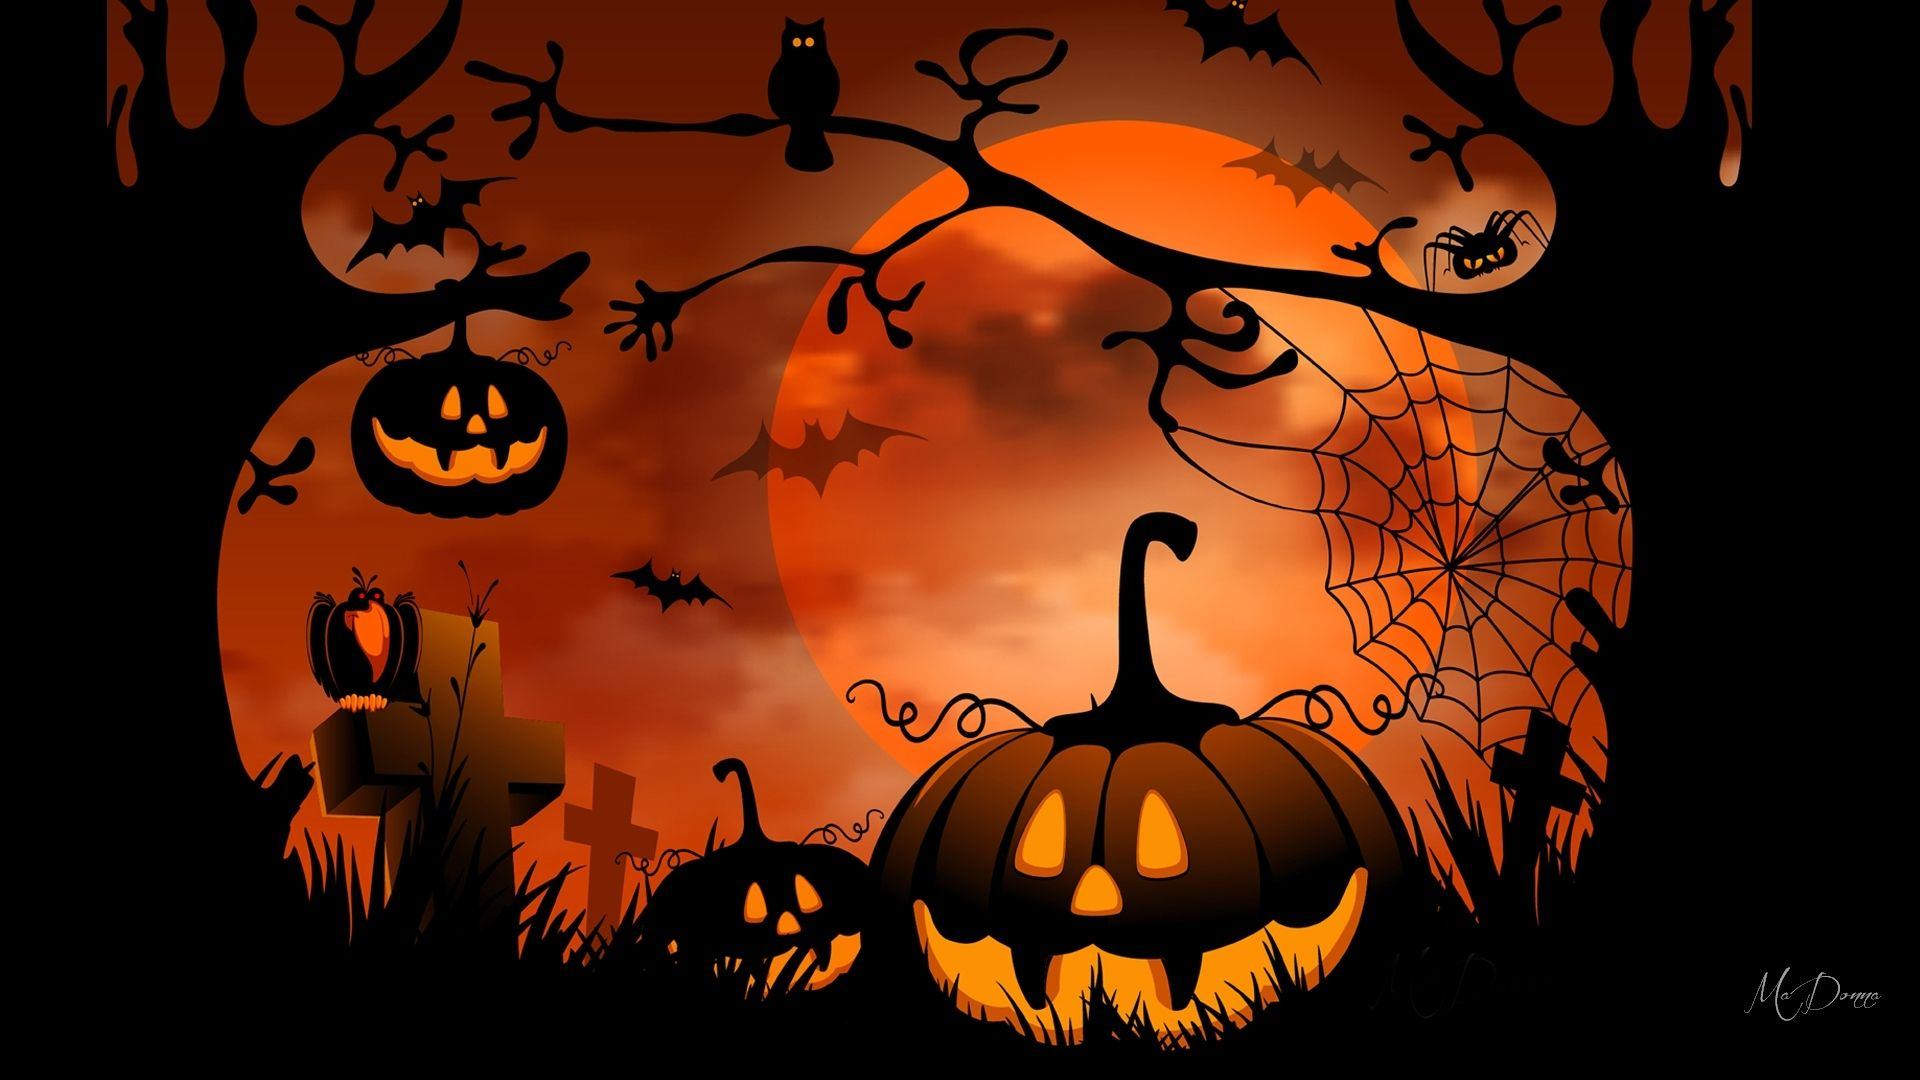 View Download Comment And Rate This 1920x1080 Halloween